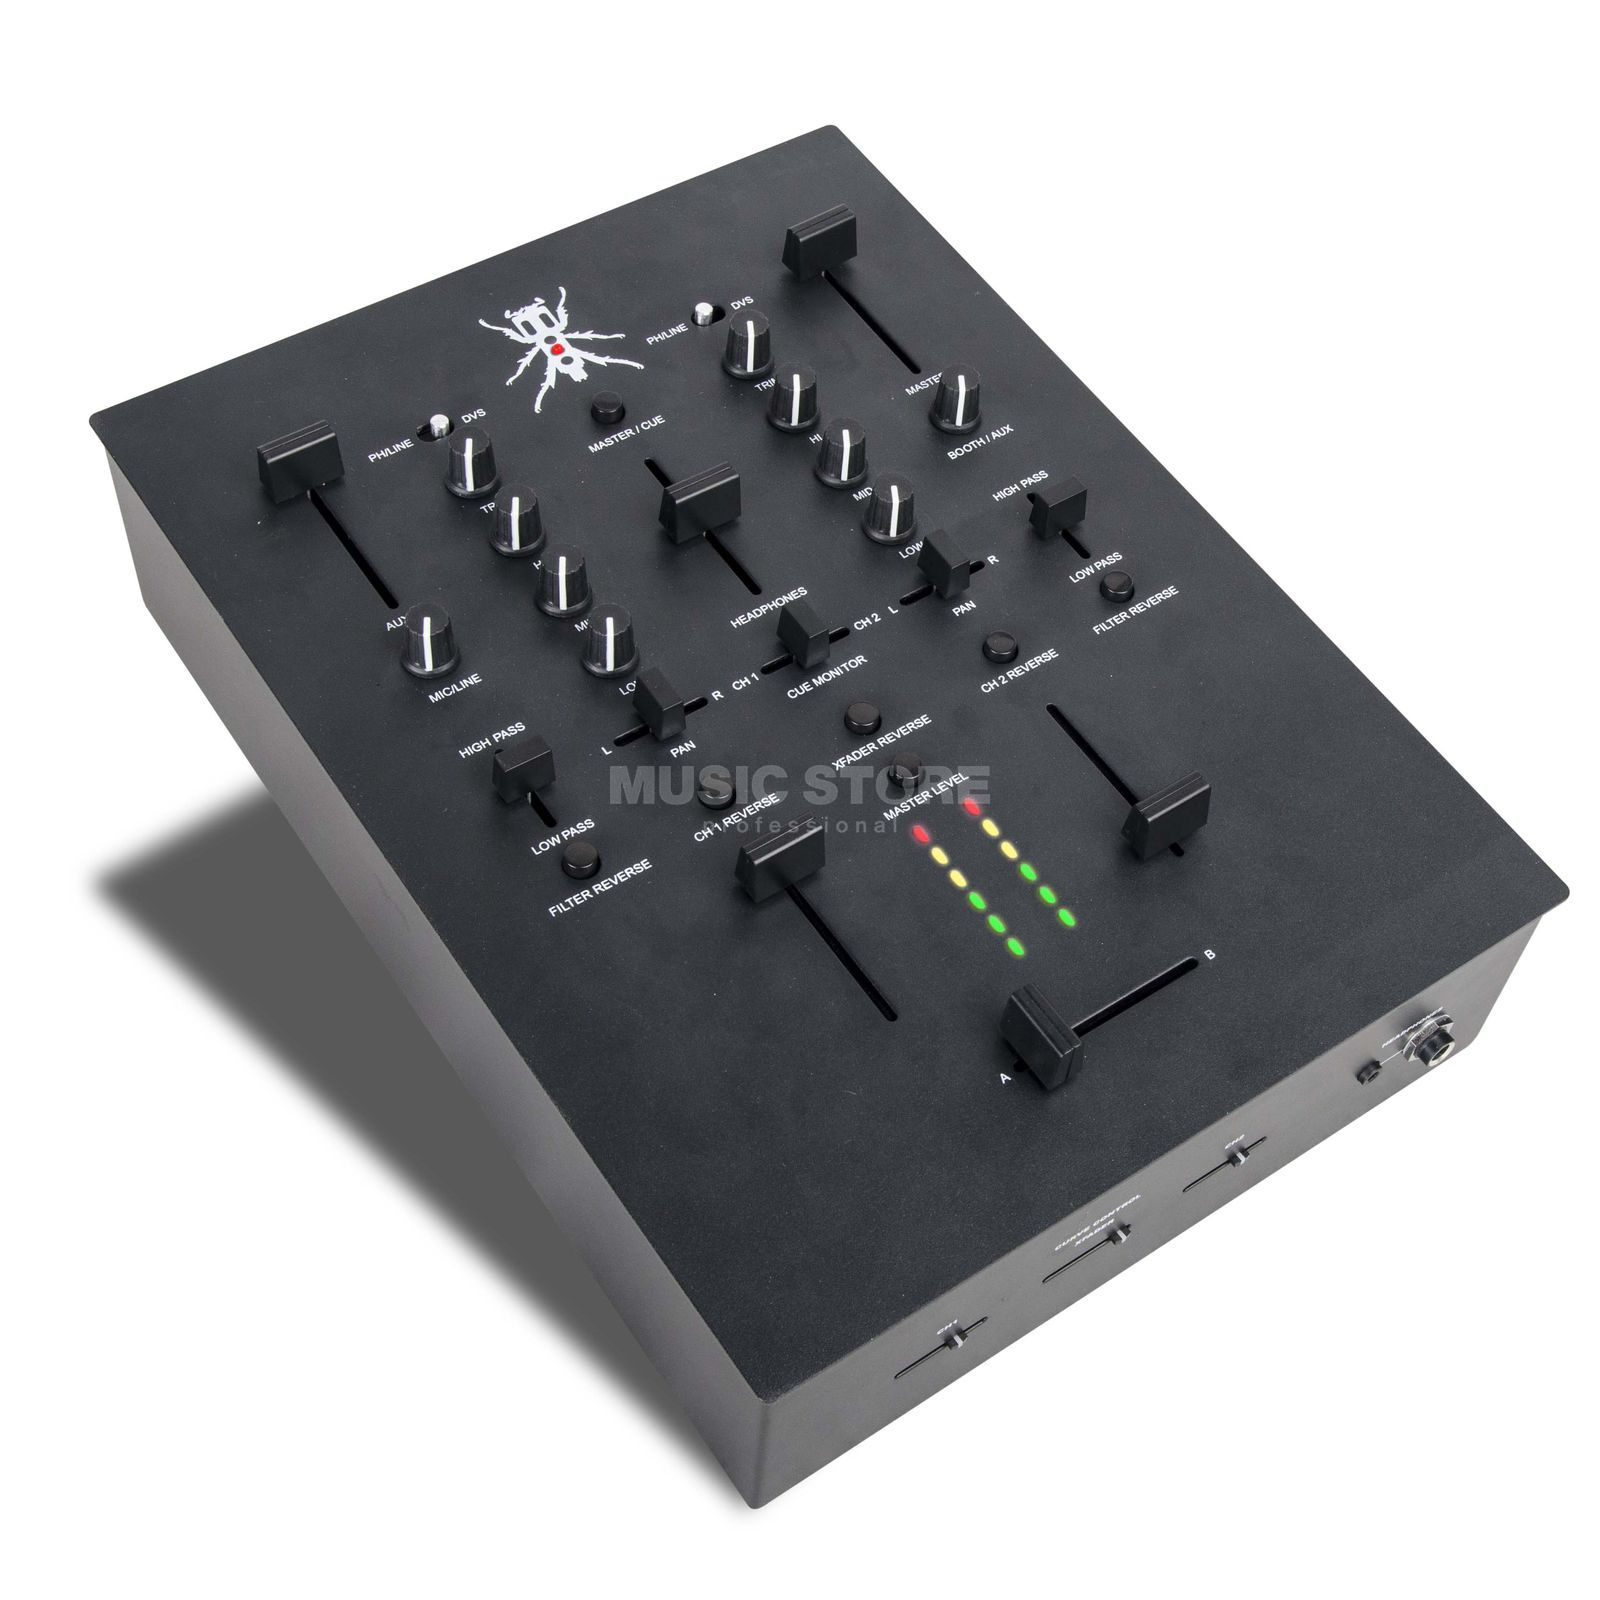 DJ-TECH TRX black Hochleistungs-Scratch-Mixer Produktbild